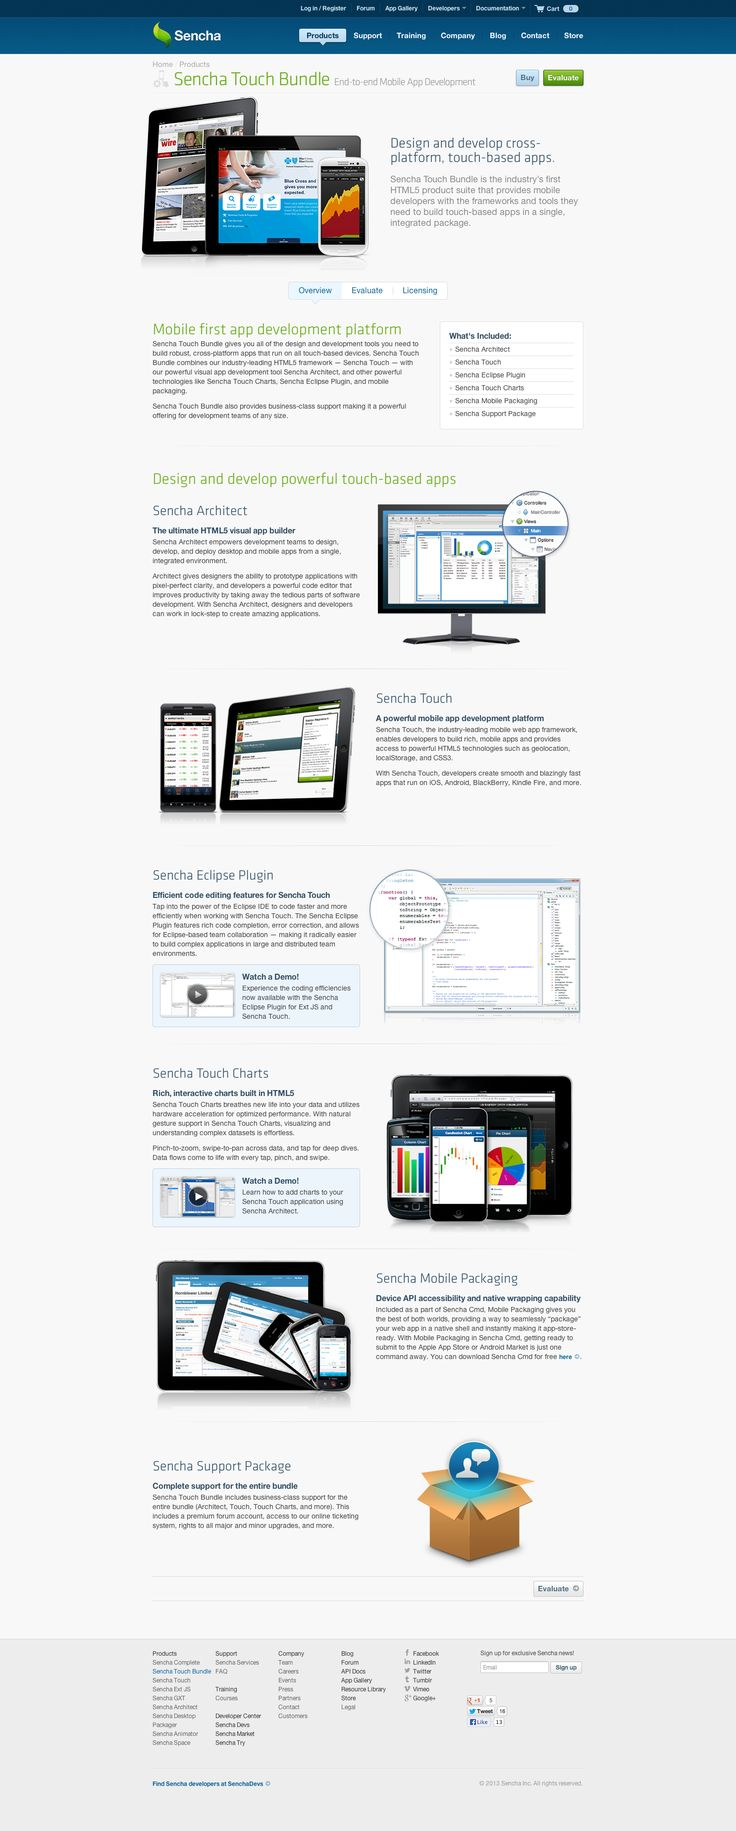 Mobile first app dev platform for touch-based apps | Sencha Touch Bundle | Products | Sencha | Awesome Screenshot